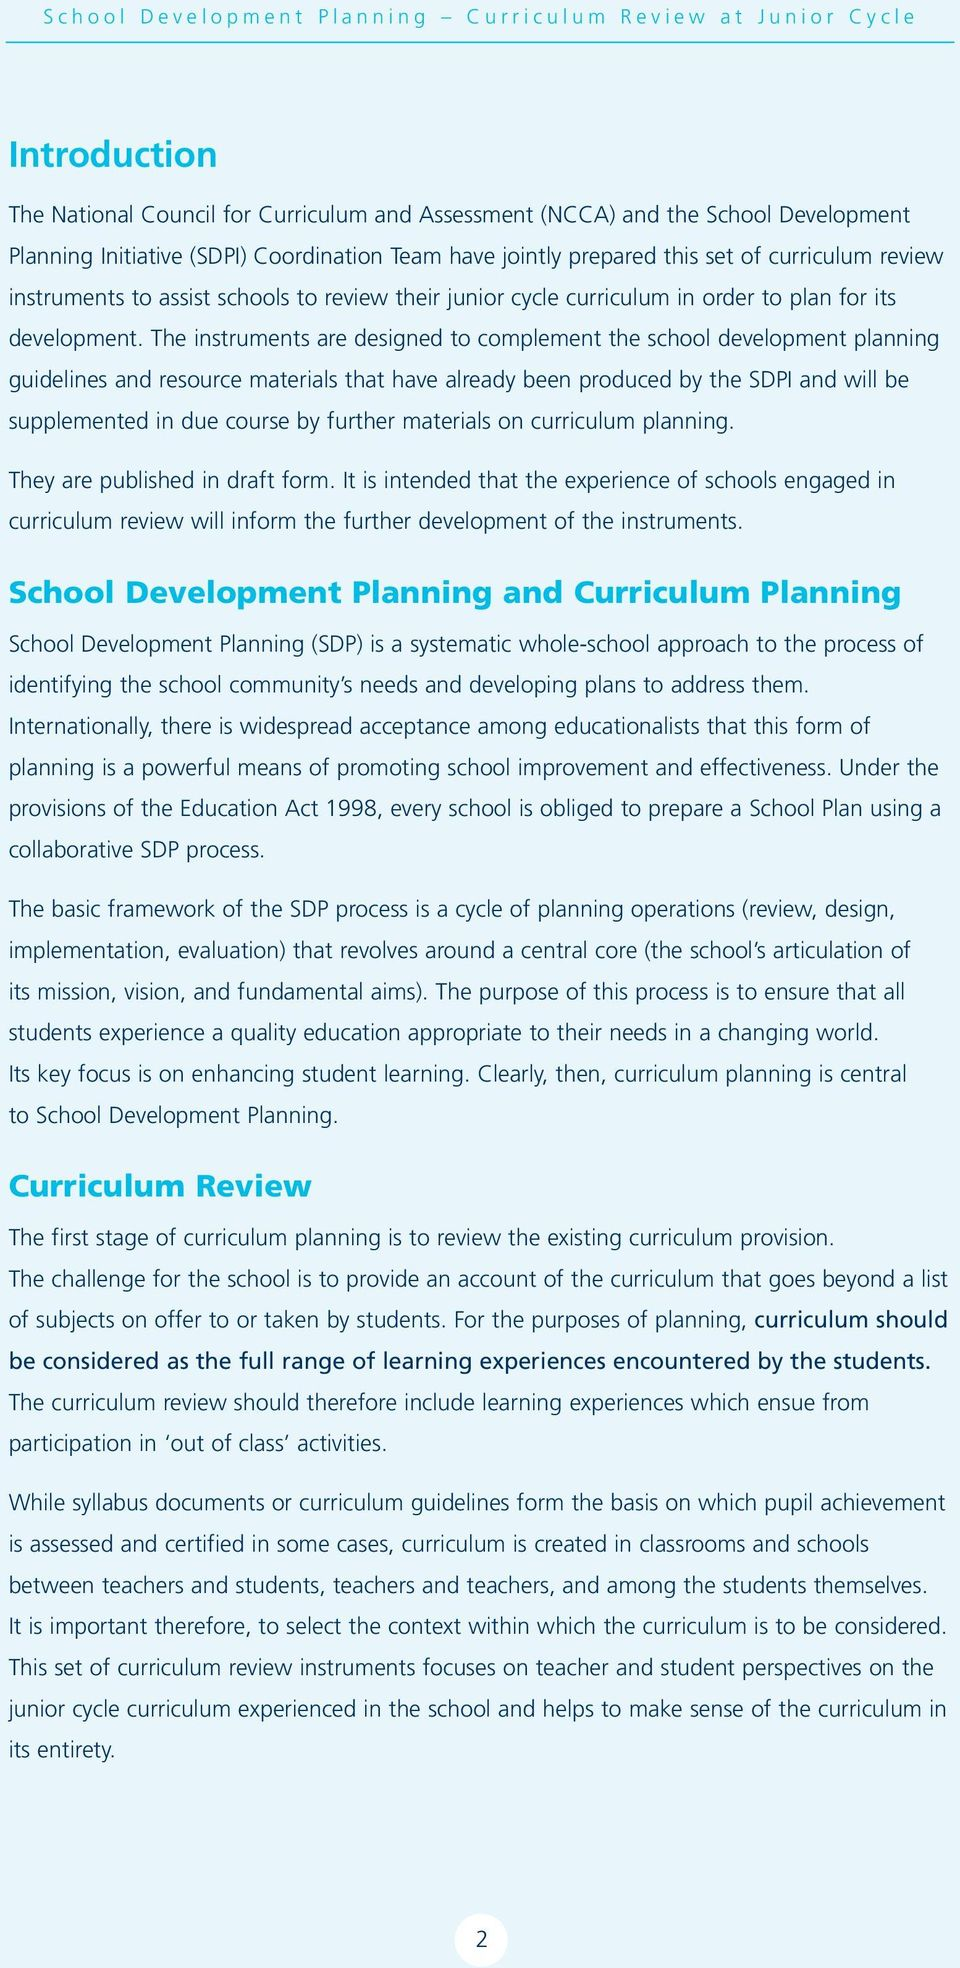 The instruments are designed to complement the school development planning guidelines and resource materials that have already been produced by the SDPI and will be supplemented in due course by